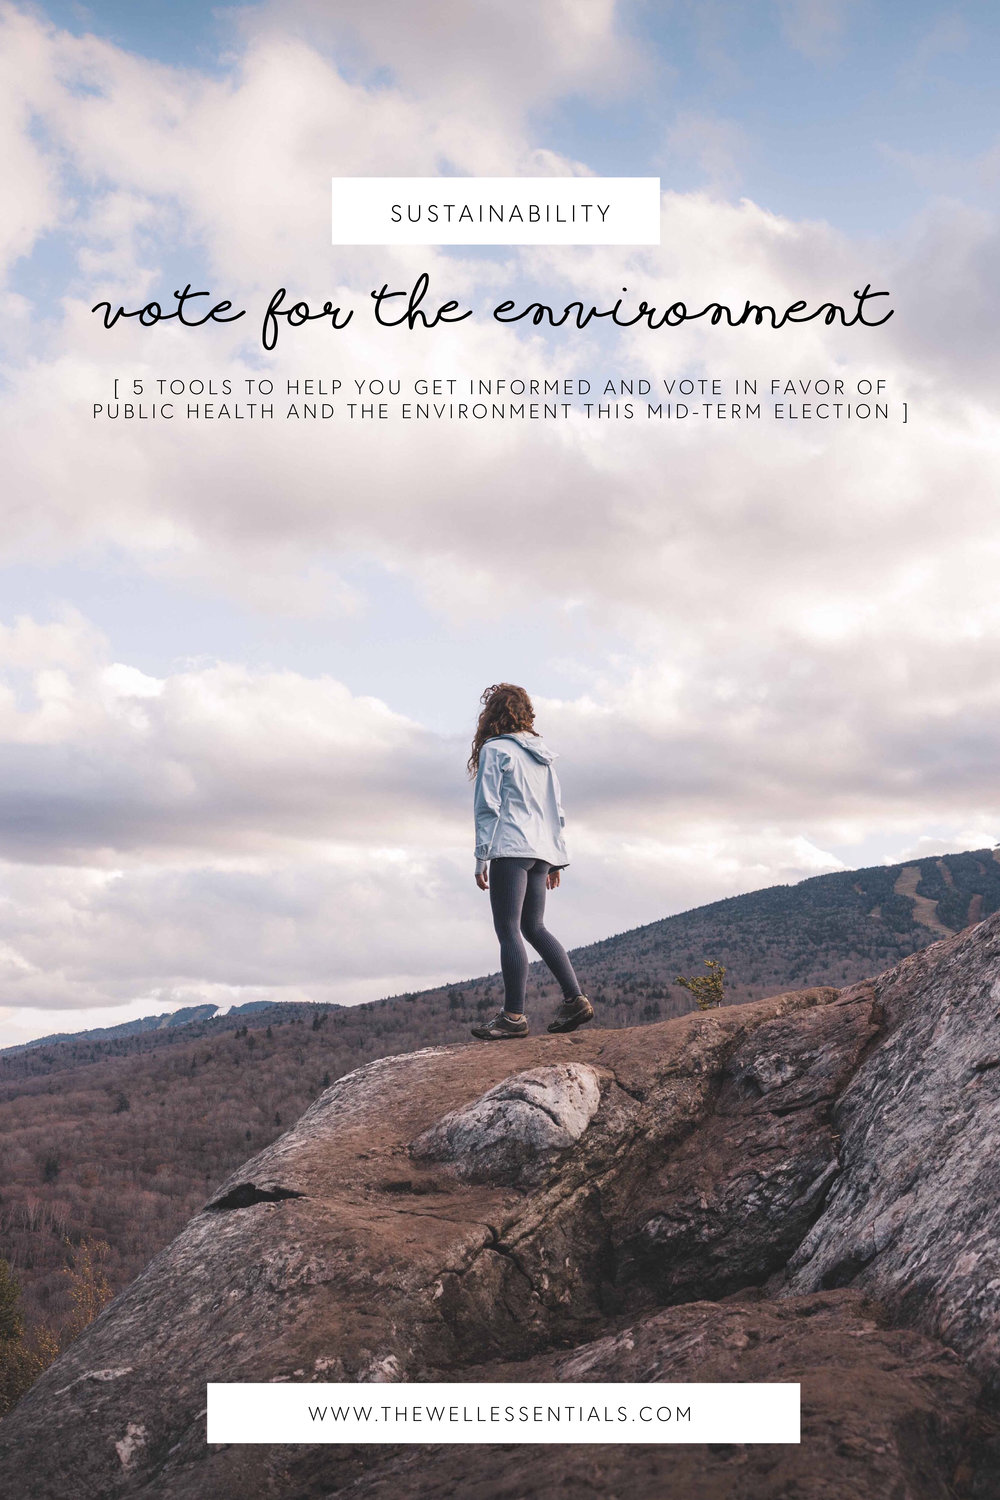 5 Tools To Help You Get Informed And Vote In Favor Of Public Health And The Environment This Mid-Term Election.jpg